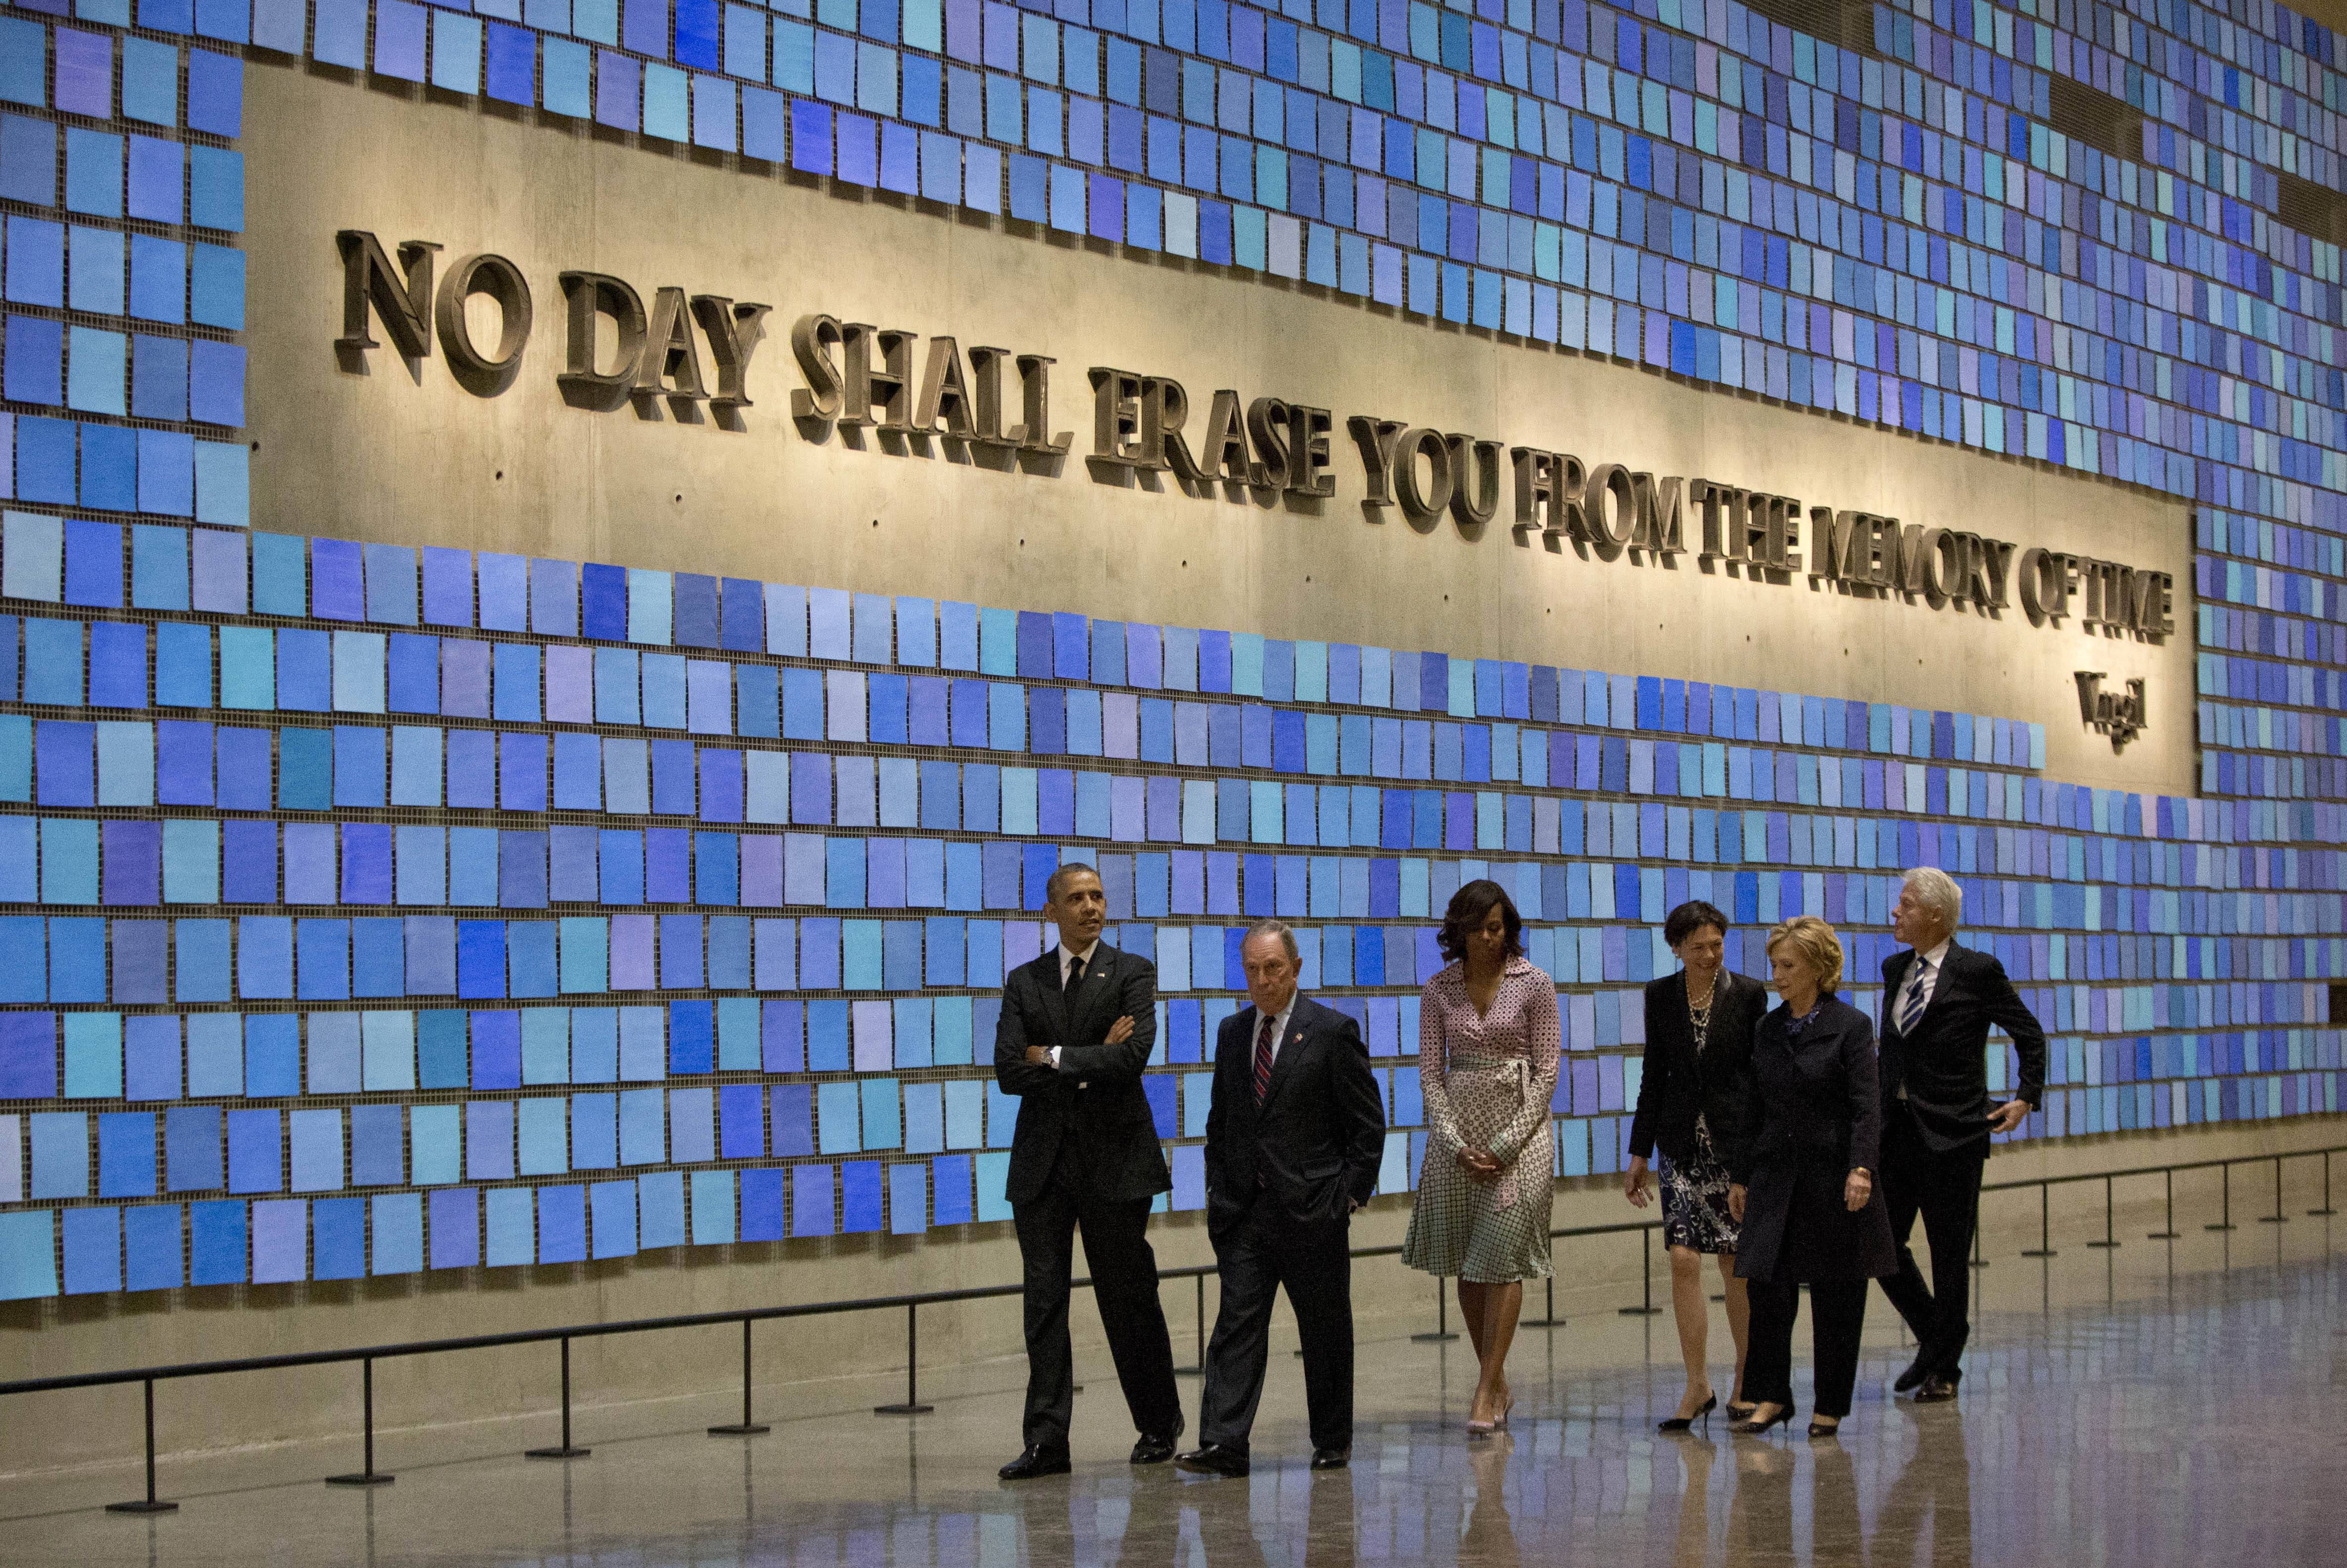 Sept. 11 museum opens to relatives and survivors